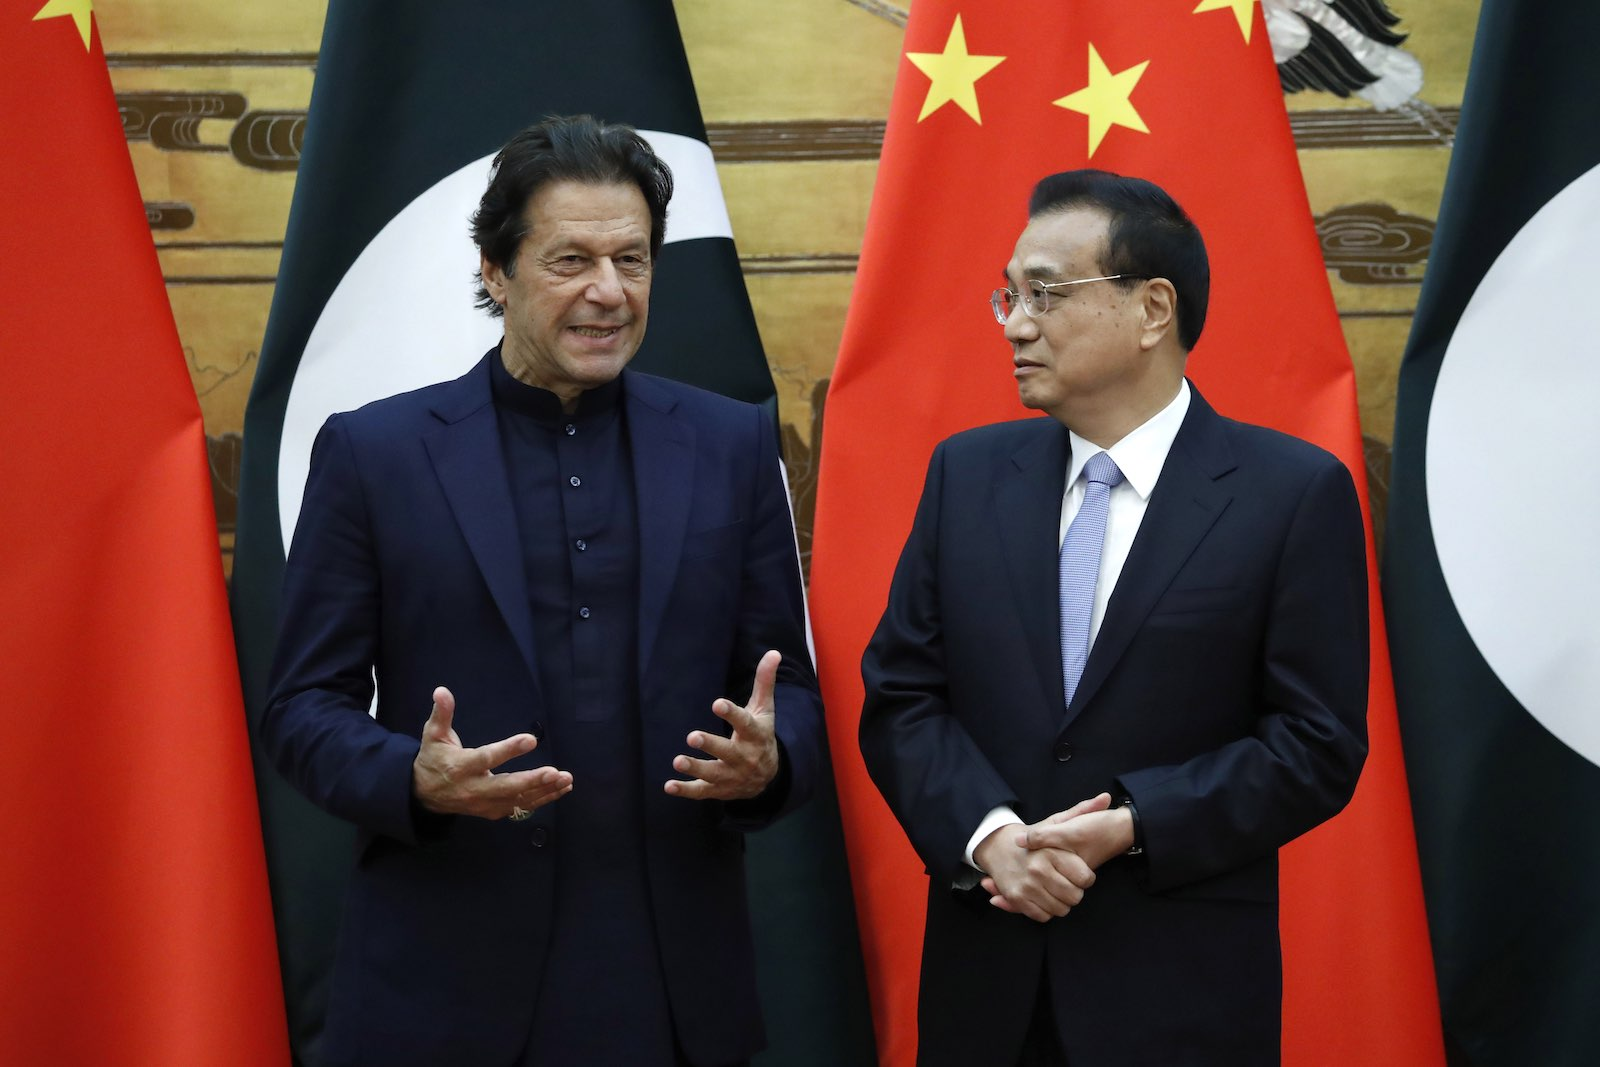 Pakistan's Prime Minister Imran Khan (L) speaks with Chinese Premier Li Keqiang at the Great Hall of the People in Beijing, 8 October 2019 (Yukie Nishizawa/Pool/Getty Images)